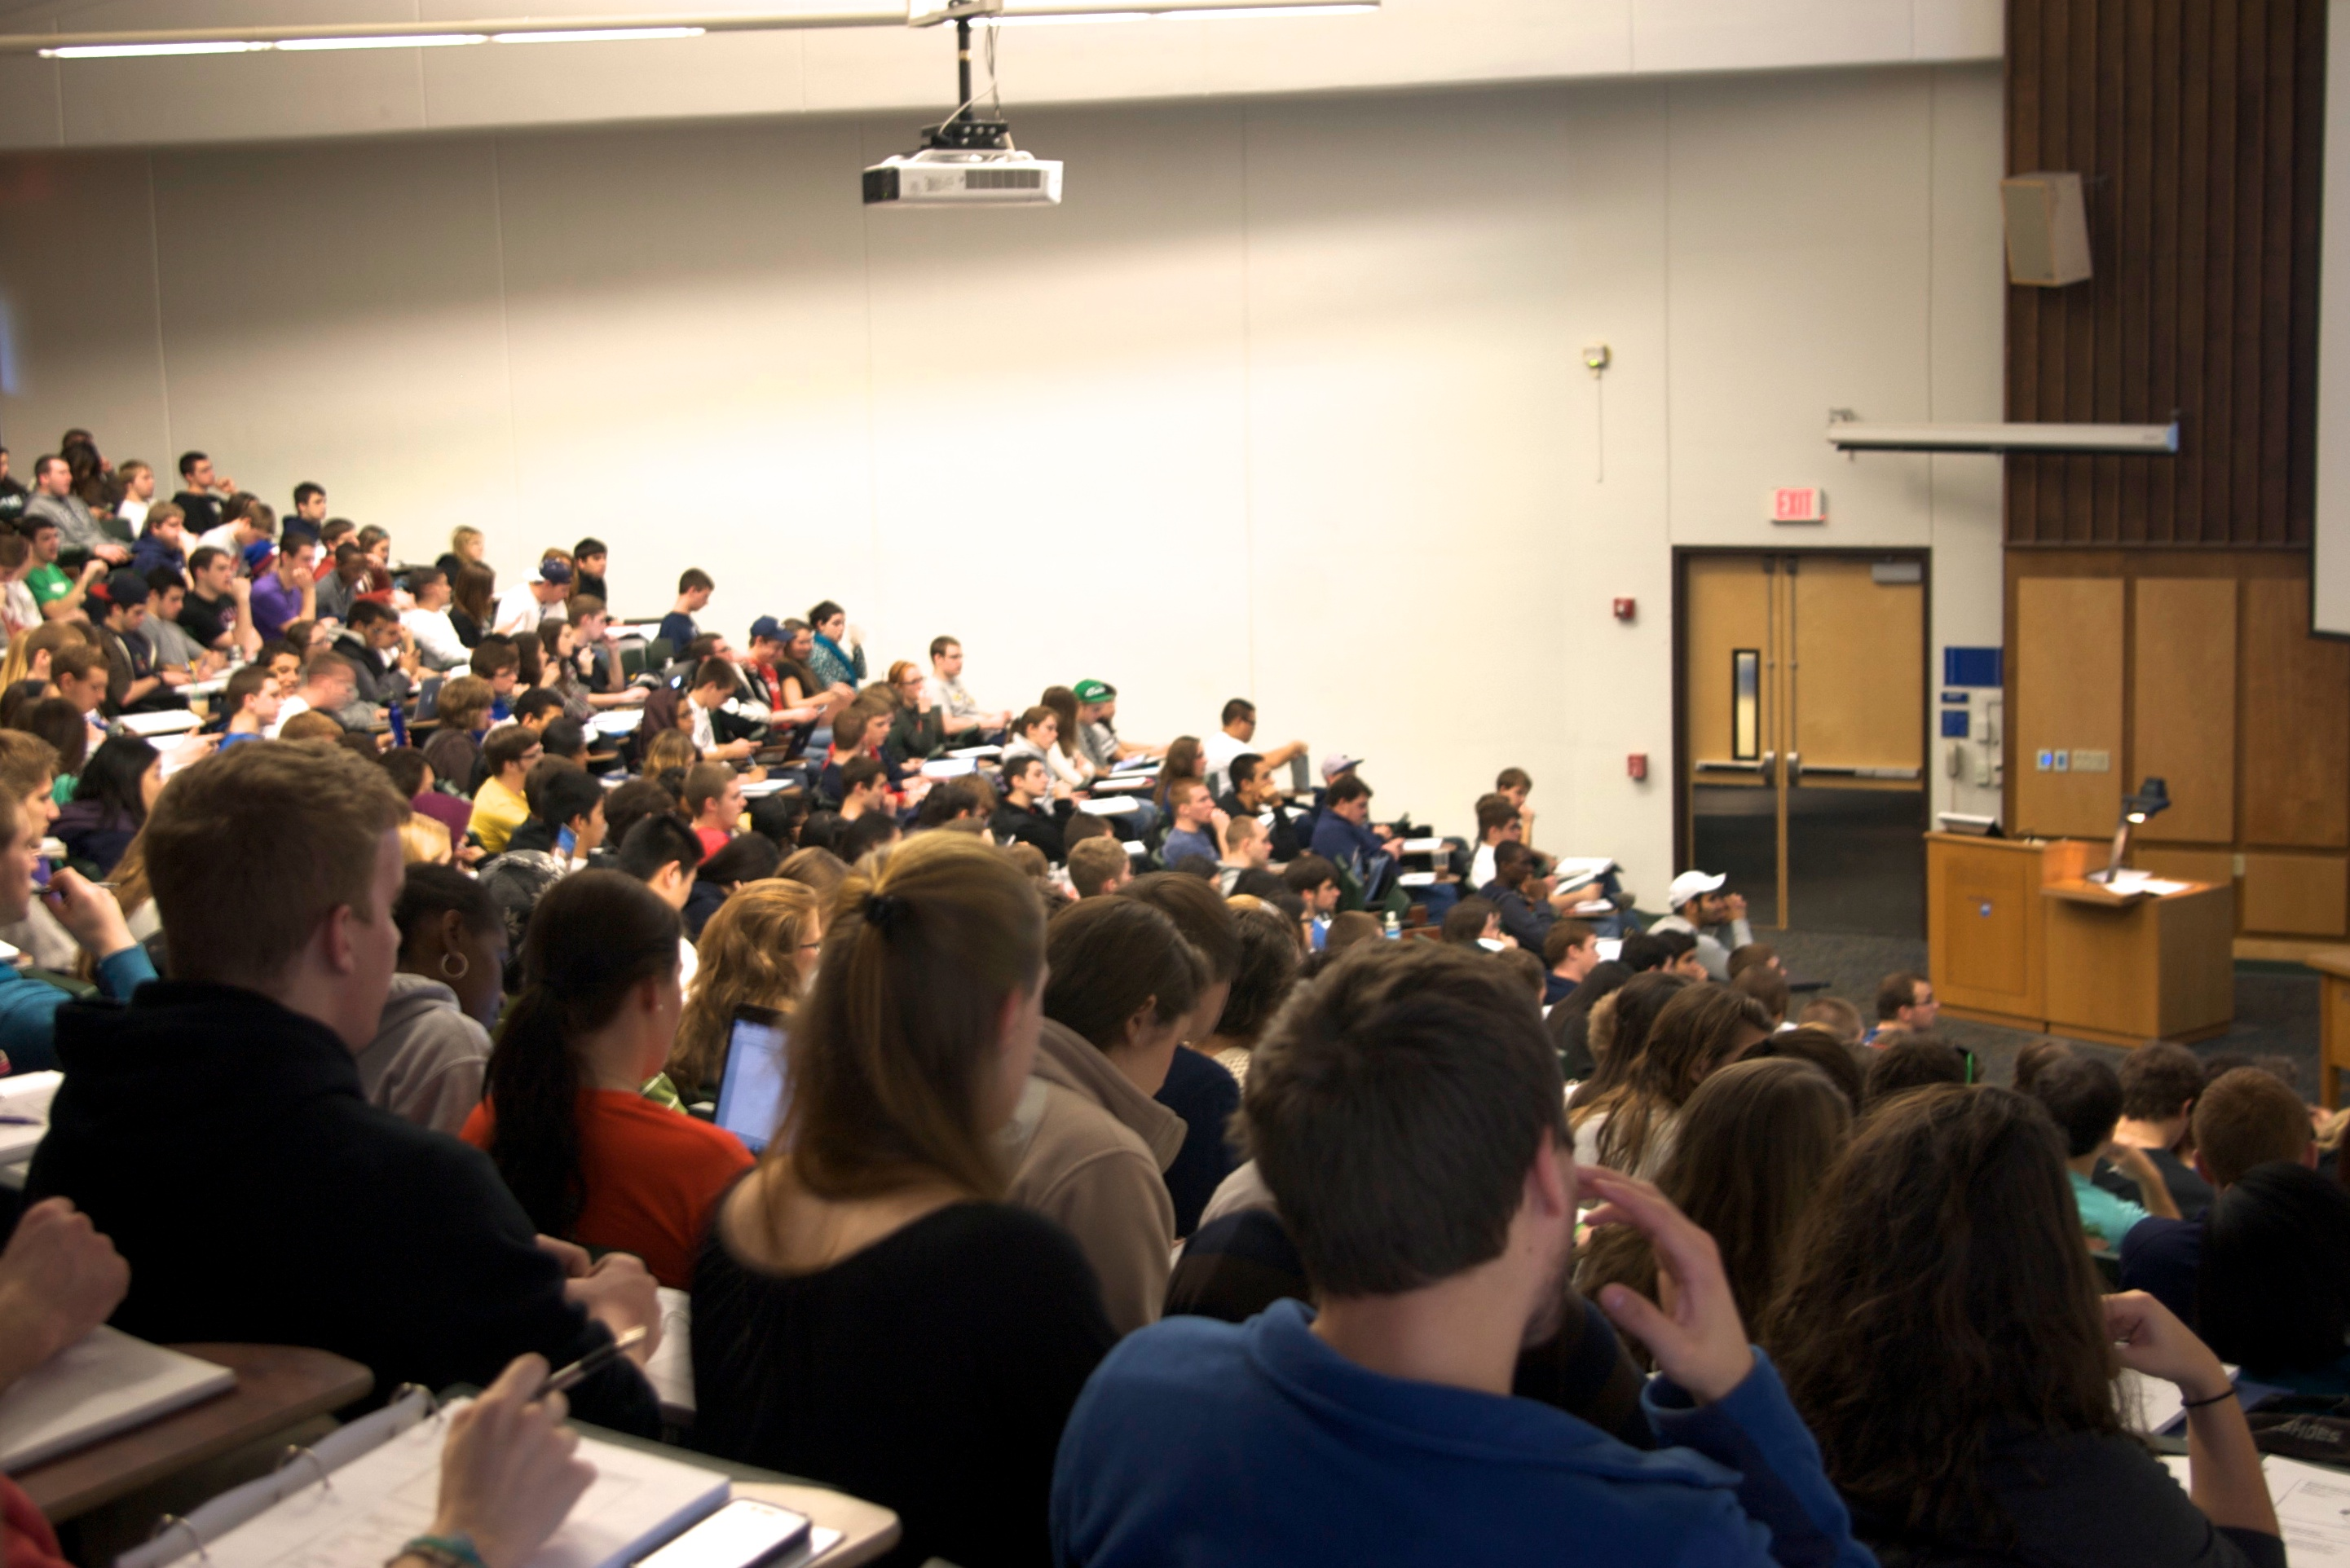 Example of a large lecture class.